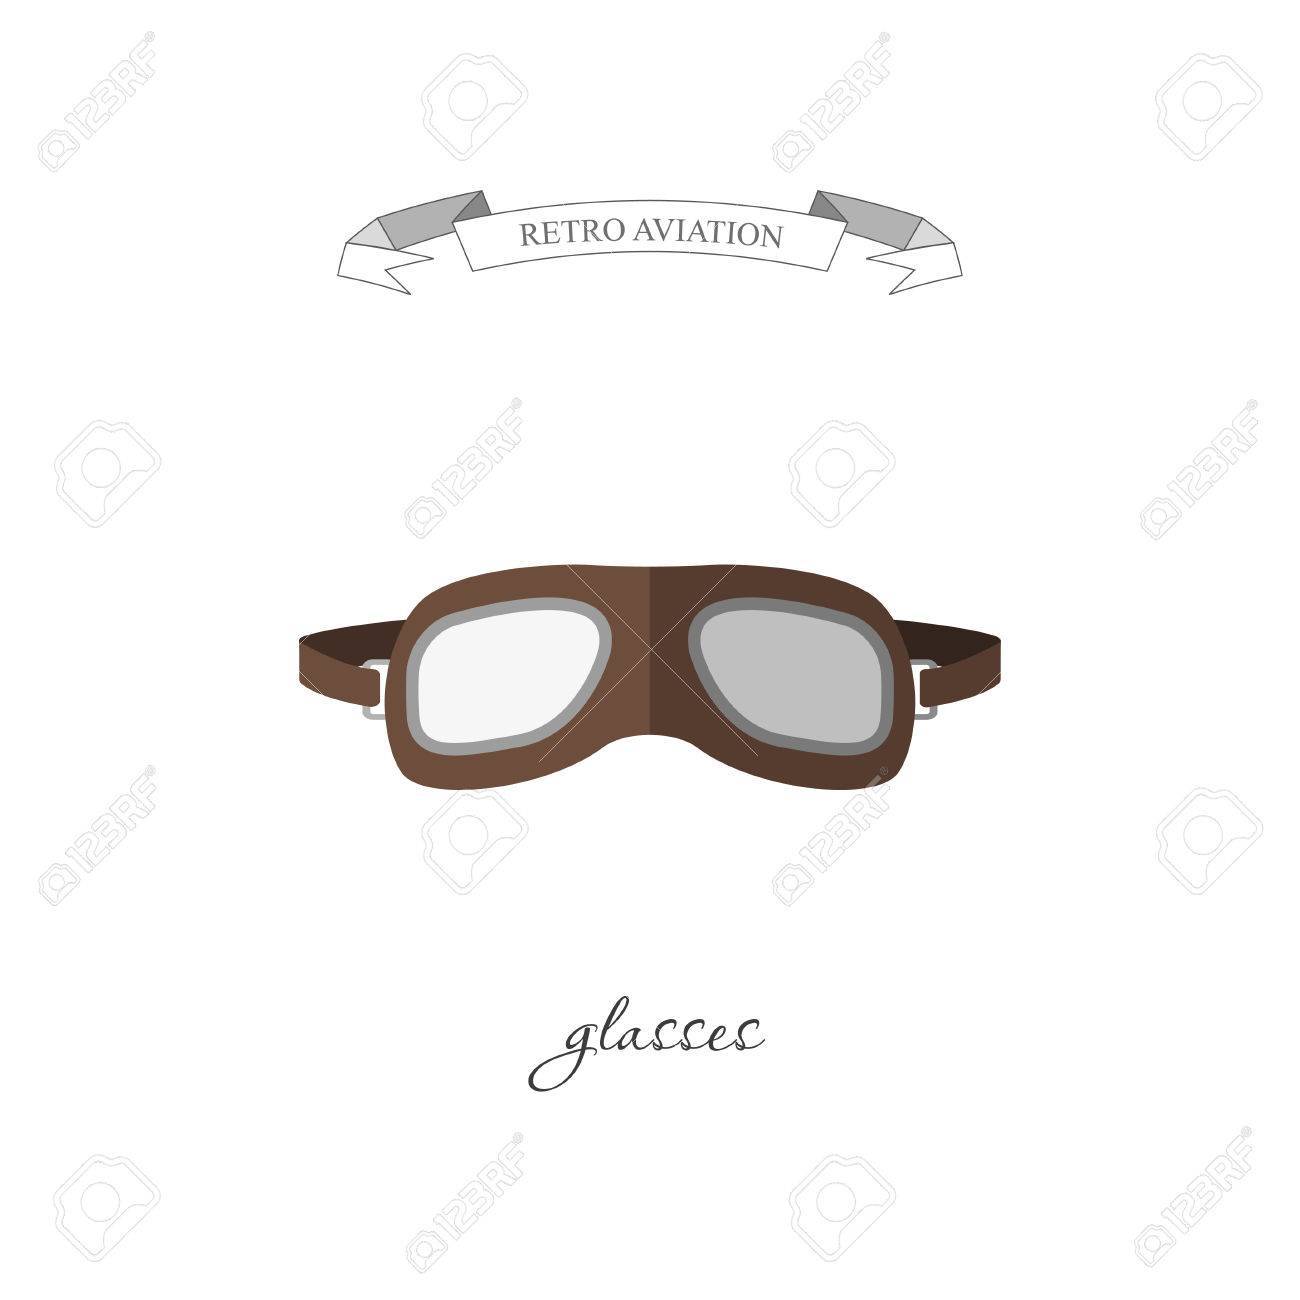 3a39c1bc43 Aircraft glasses in a flat style. Vector illustration Stock Vector -  58338850